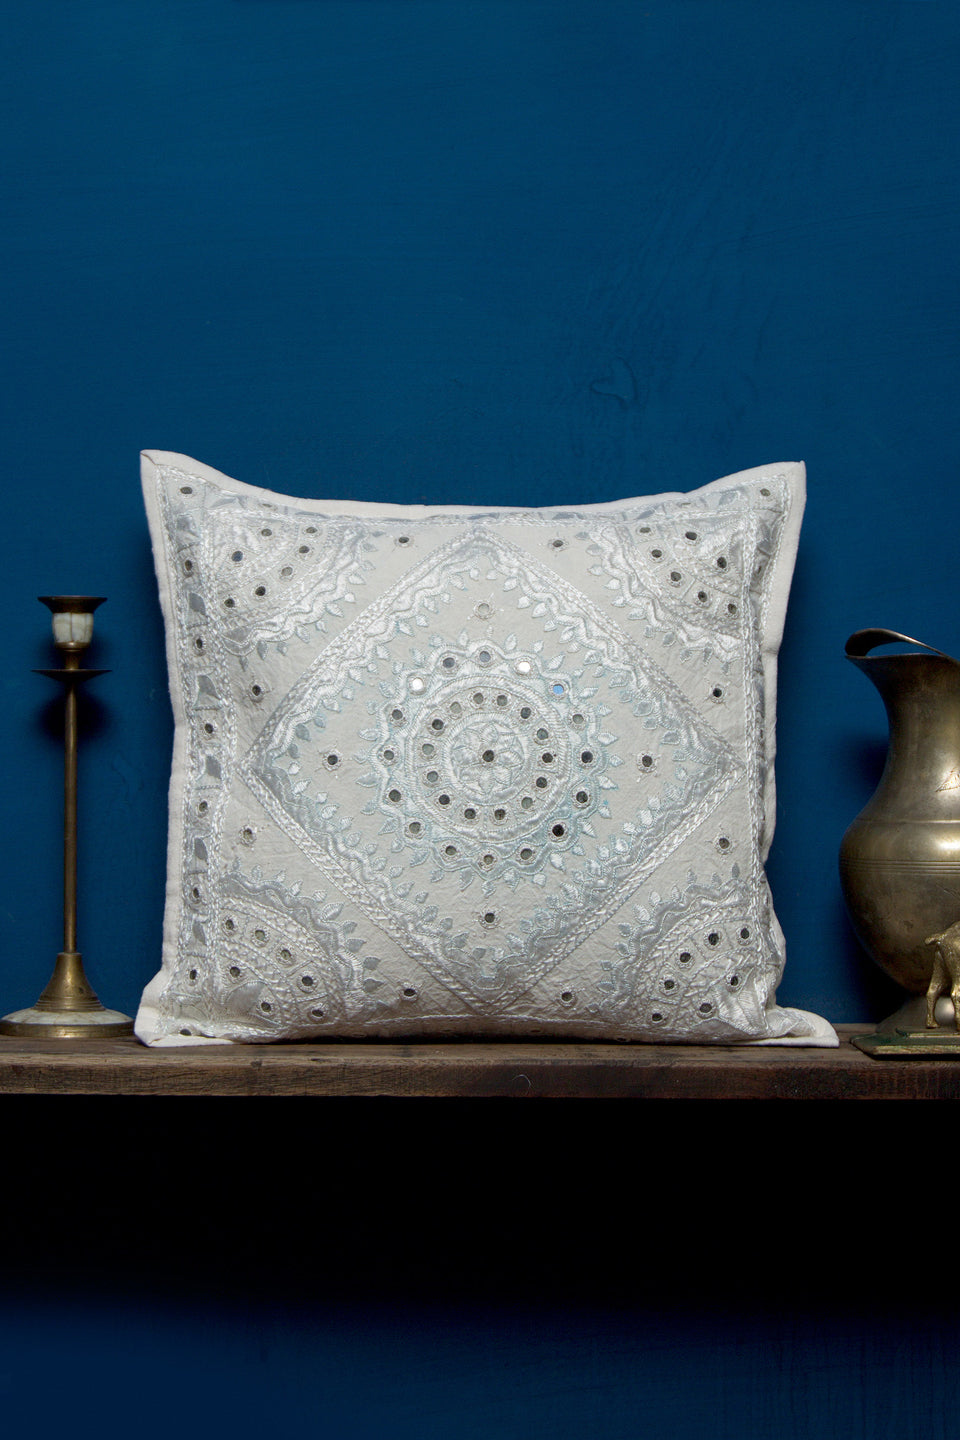 Heavy Embroidery with Mirror Work Cushion Cover,White